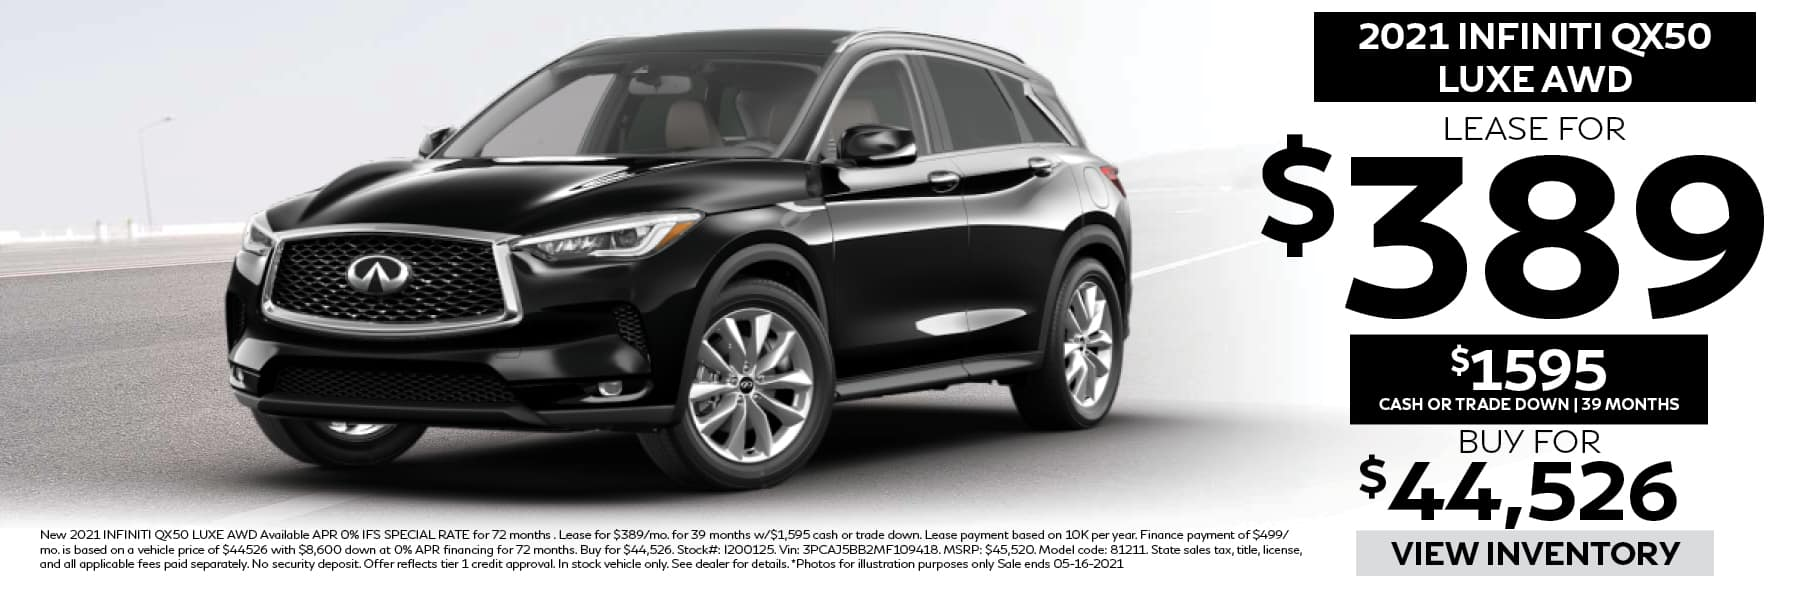 revised_QX50_LUXE_webslides_INFINITI